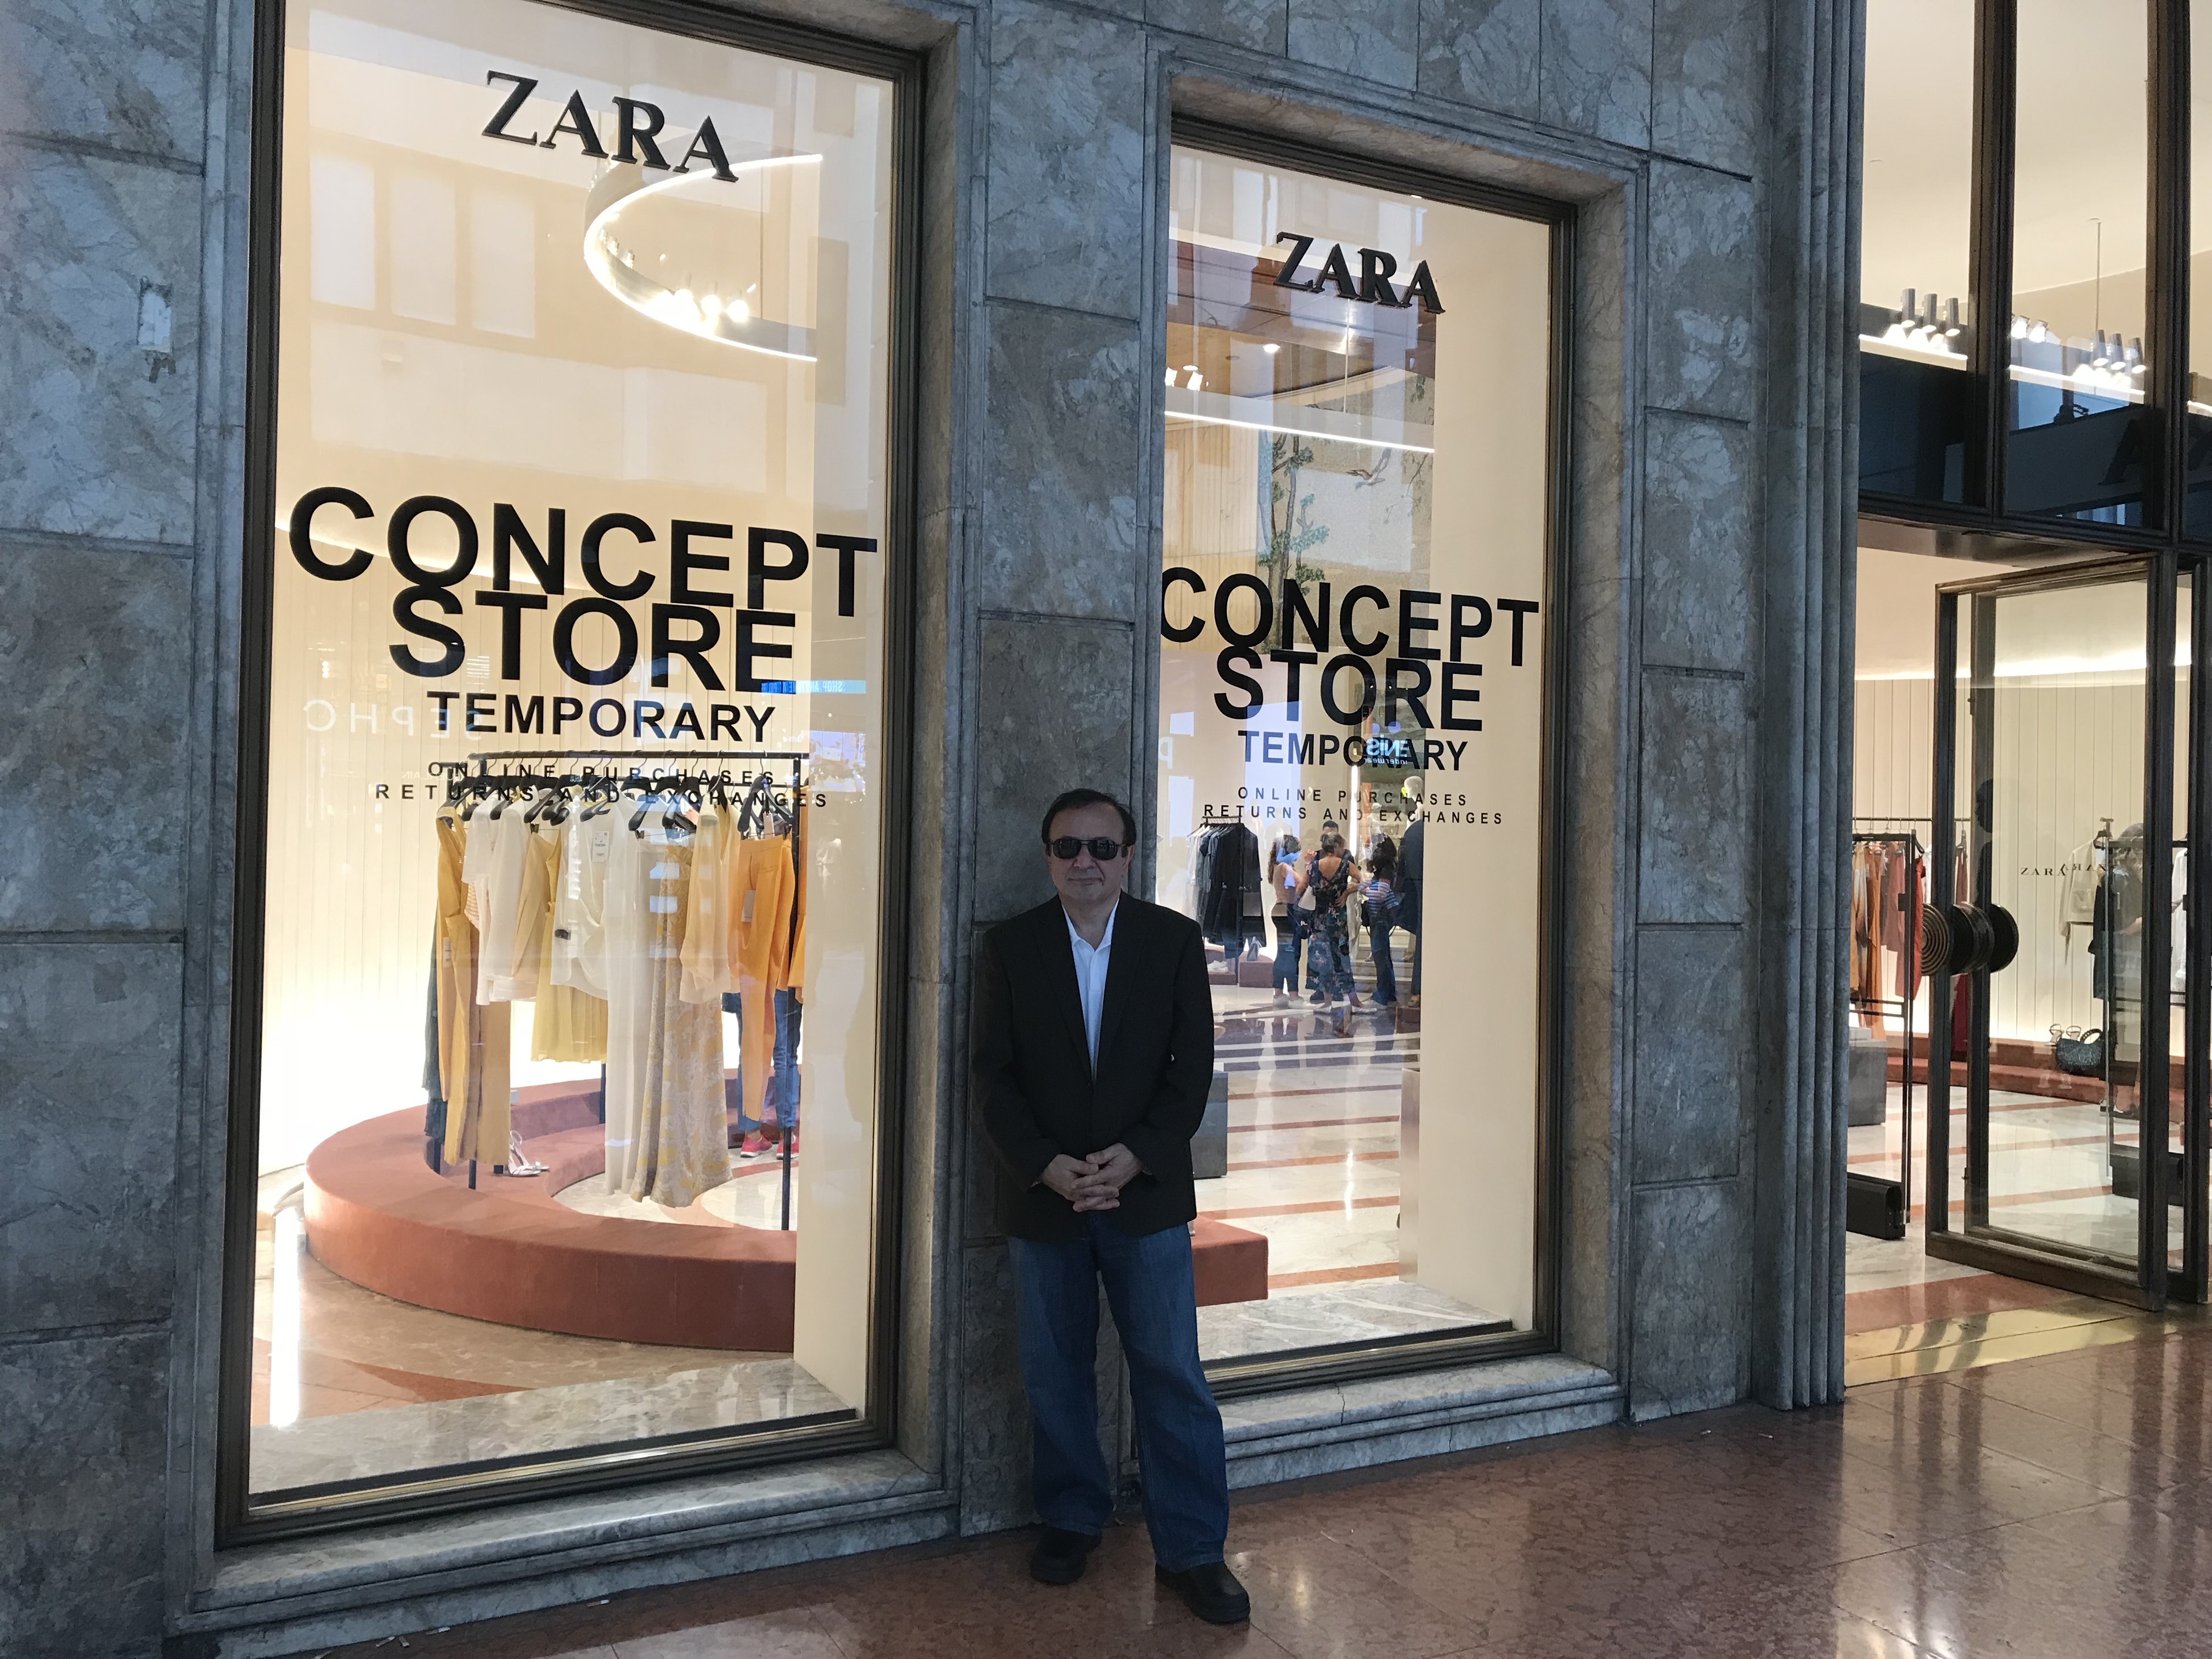 4958988f8c This past week had the pleasure of visiting the new Zara Concept Store in  Milan, Italy. Located near to the Galleria Vittorio Emanuele II, one of the  oldest ...